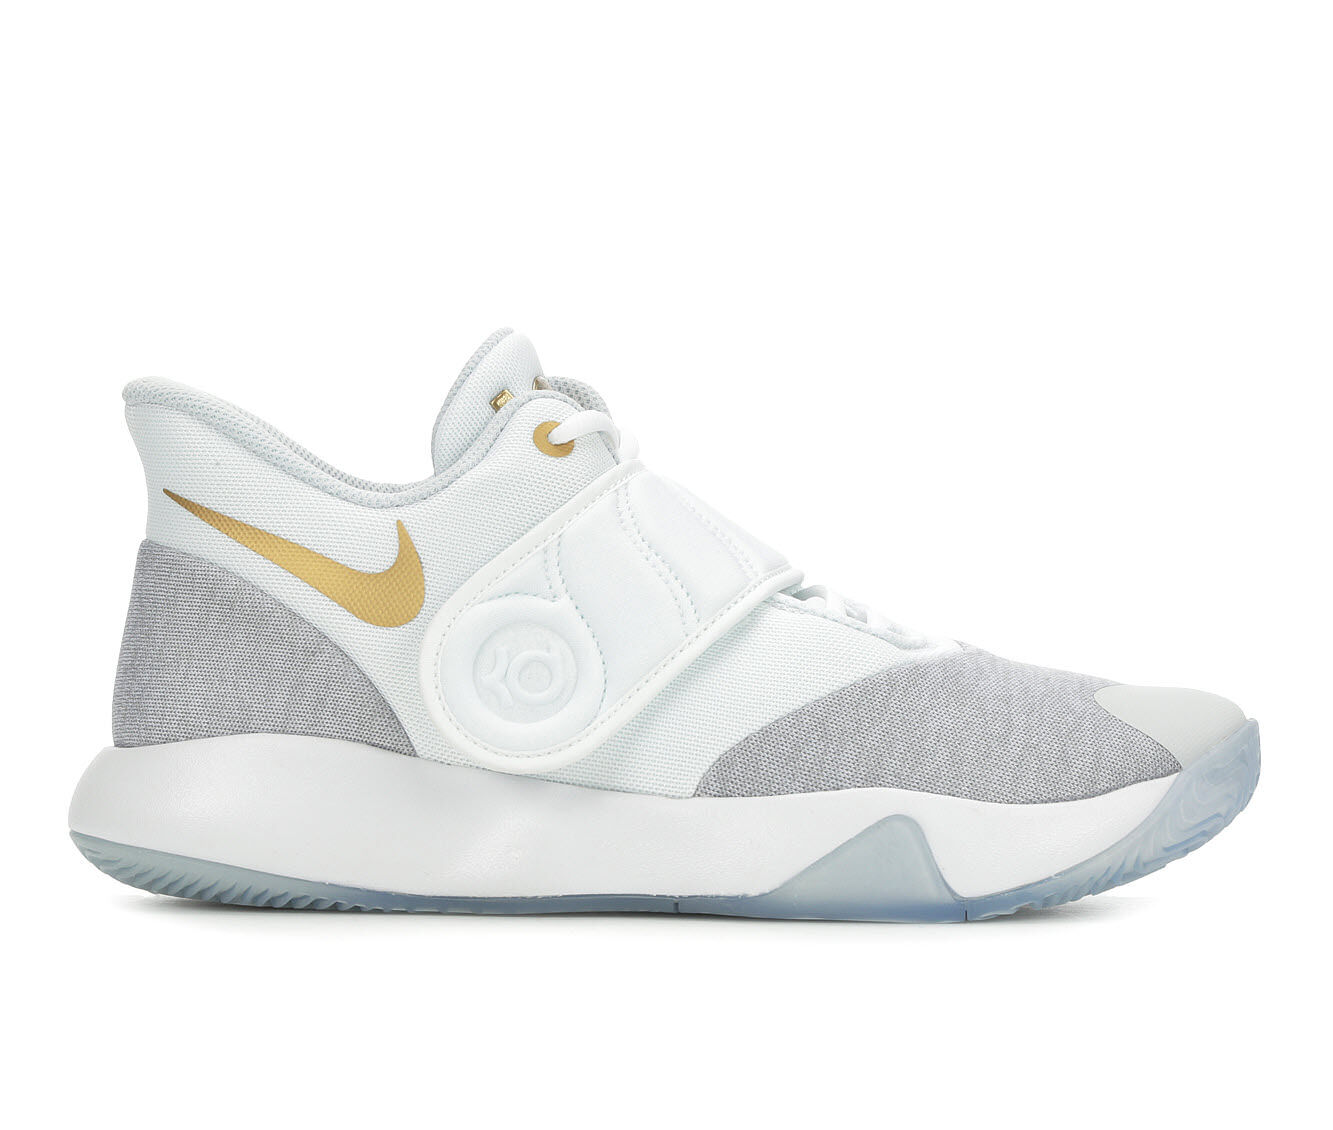 3301ff64cae8 ... new arrivals nike kd trey 5 vi high top basketball shoes. previous  37e3f c78c9